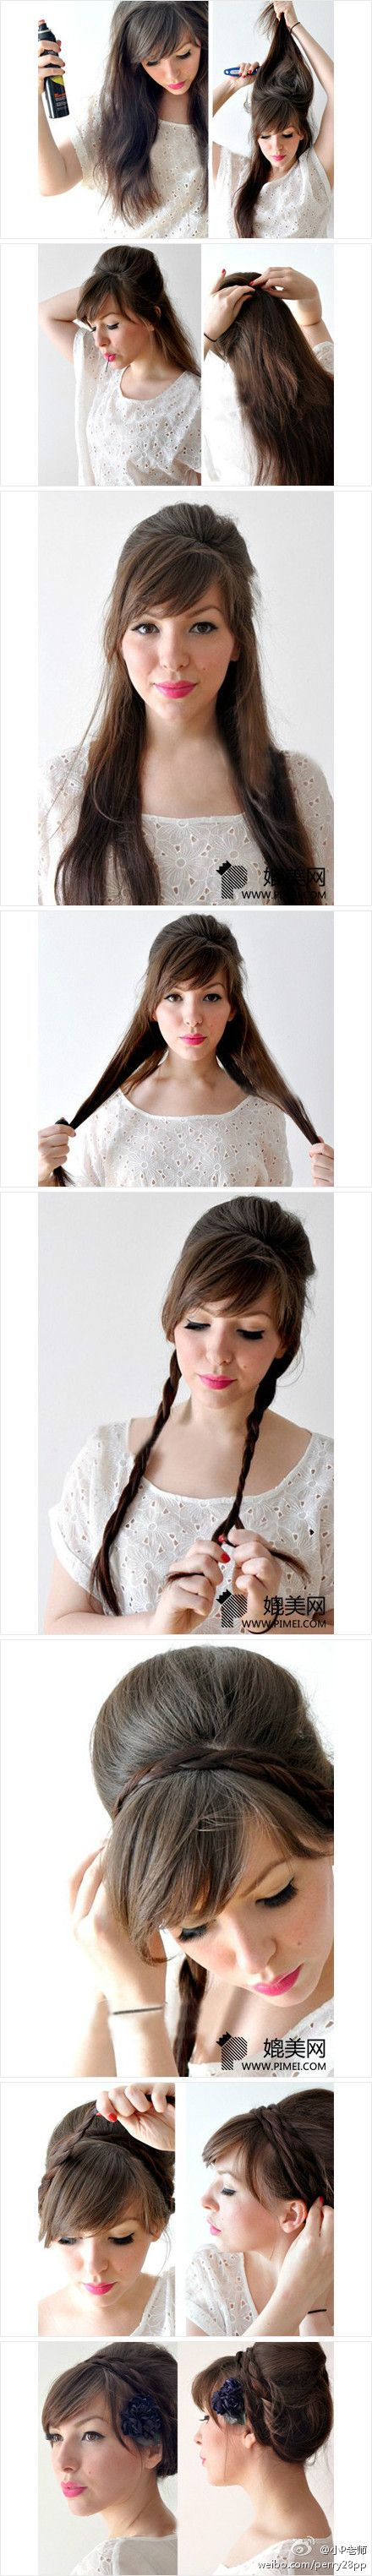 So apparently I'm growing my hair out so I can do this..